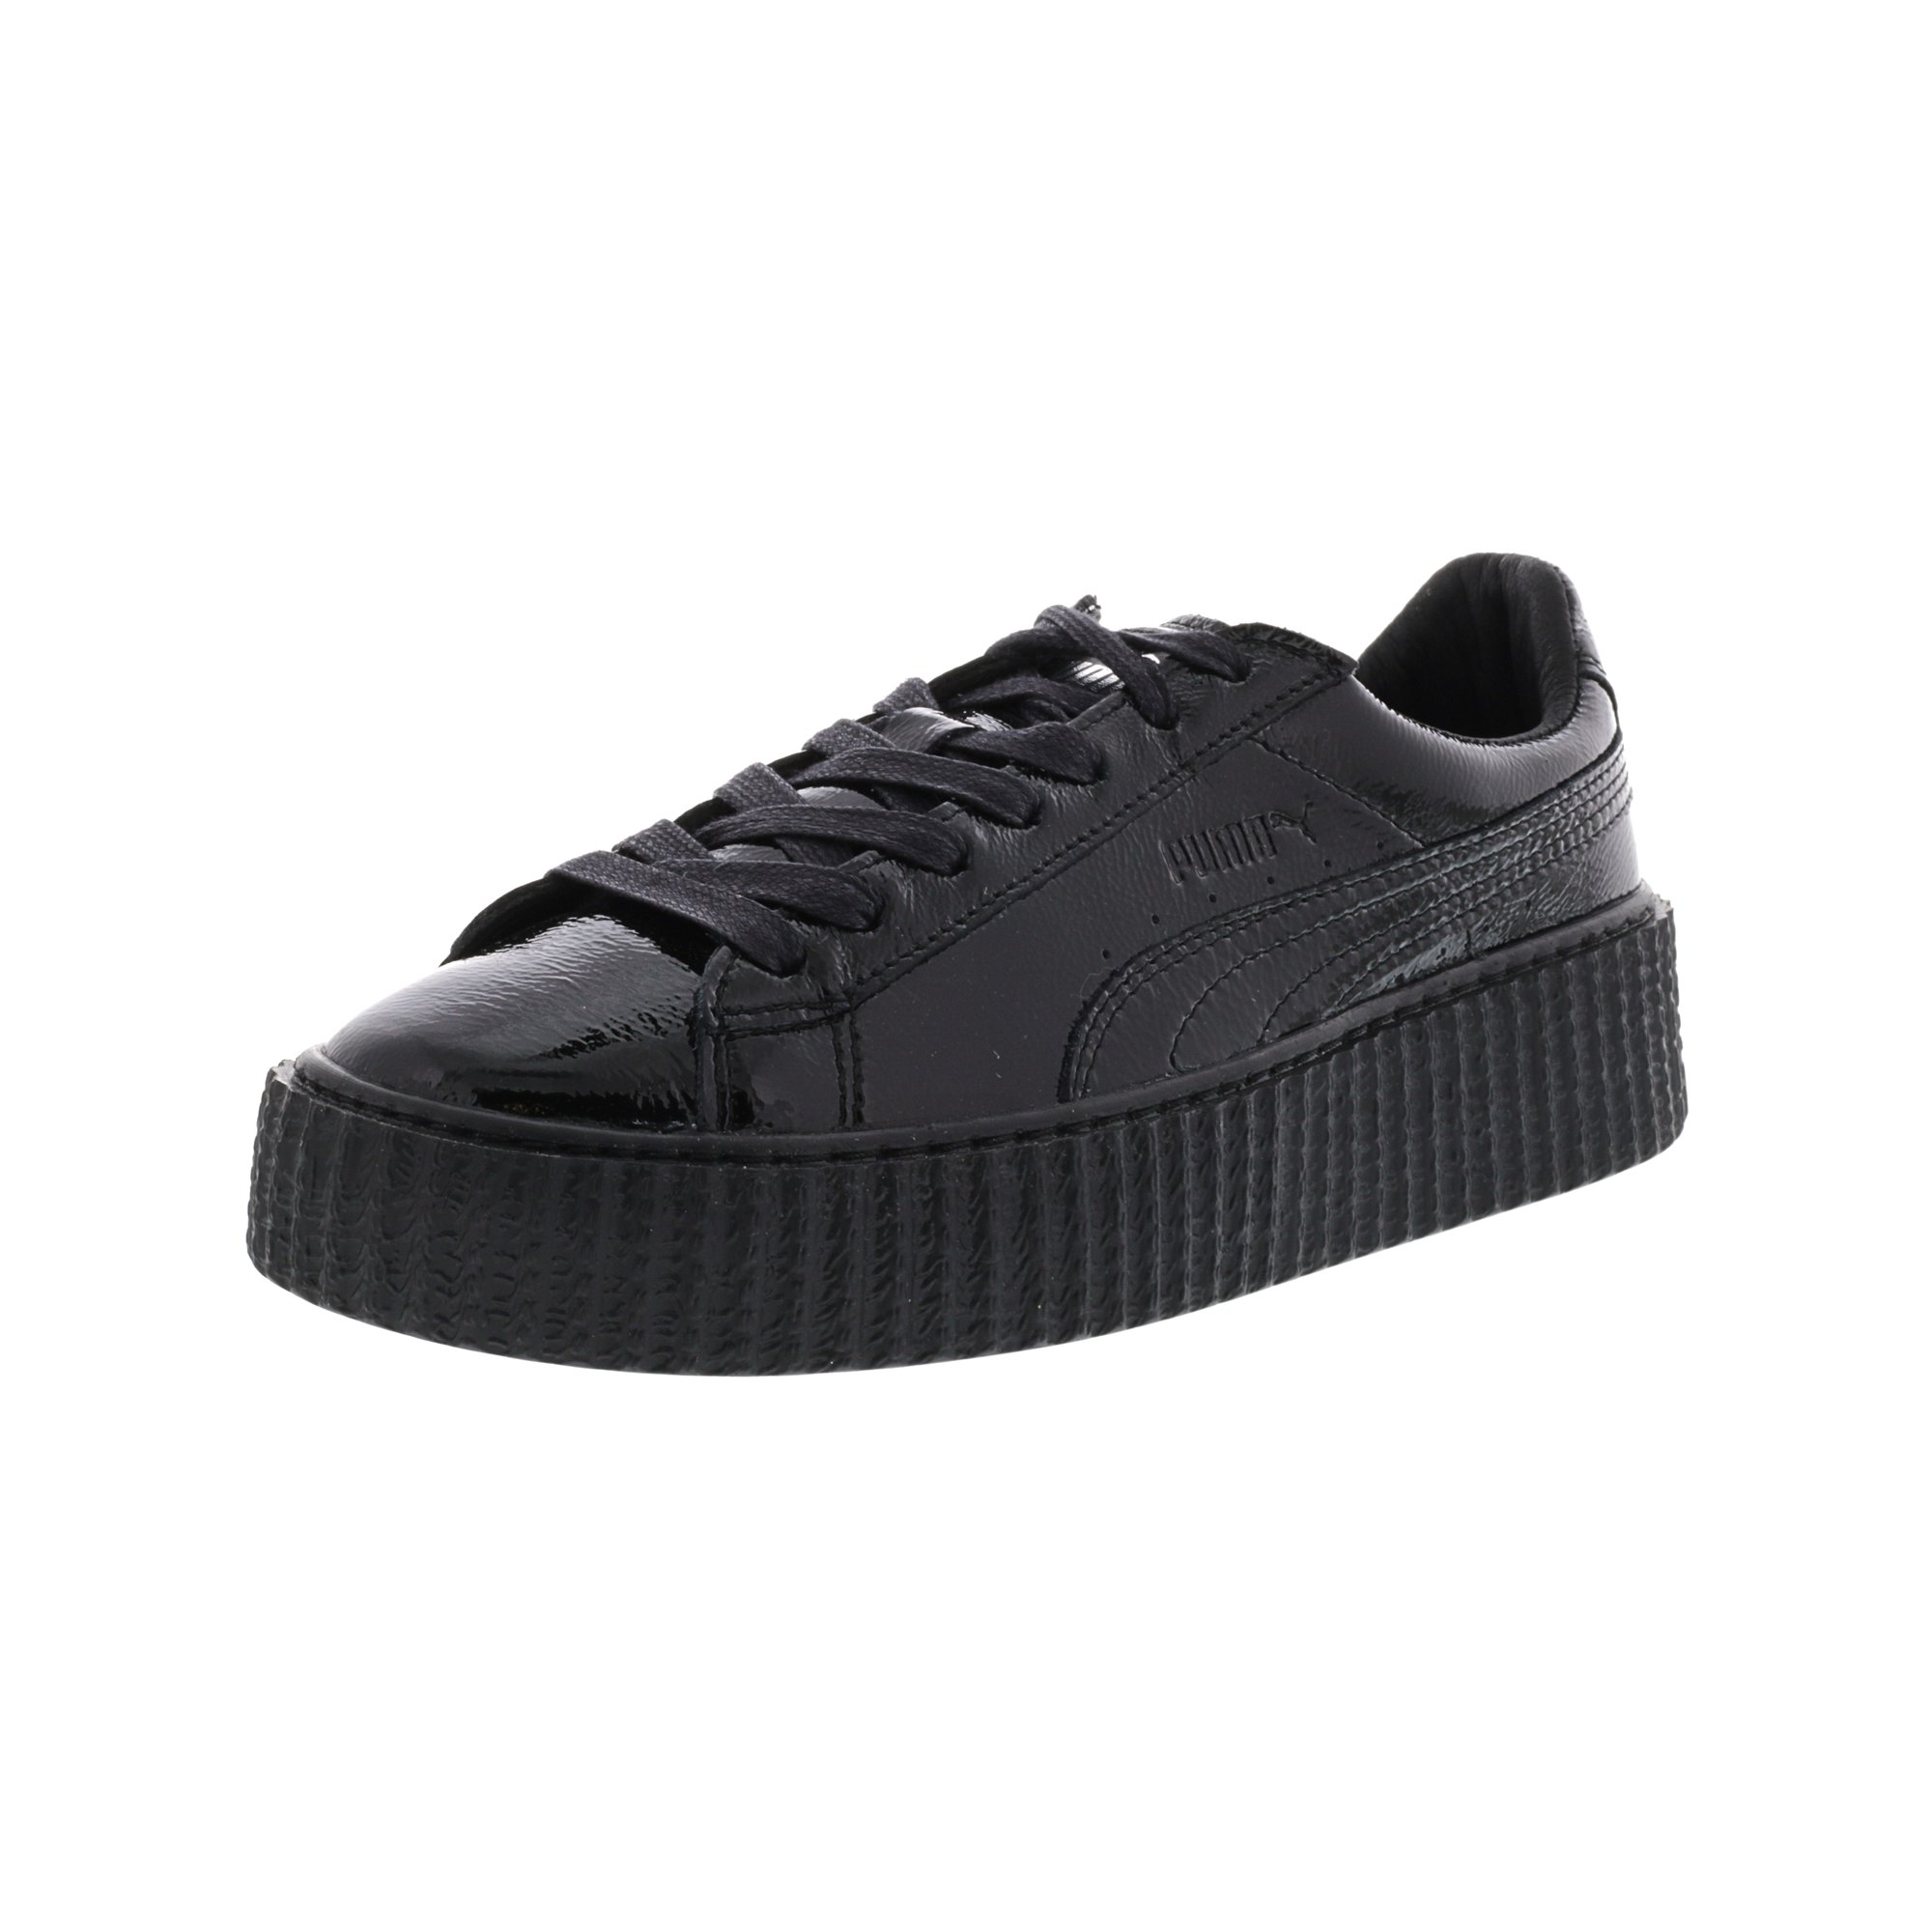 best cheap bcde9 b7dee Puma Women's Creeper Wrinkled Patent Black / Ankle-High Leather Fashion  Sneaker - 6.5M